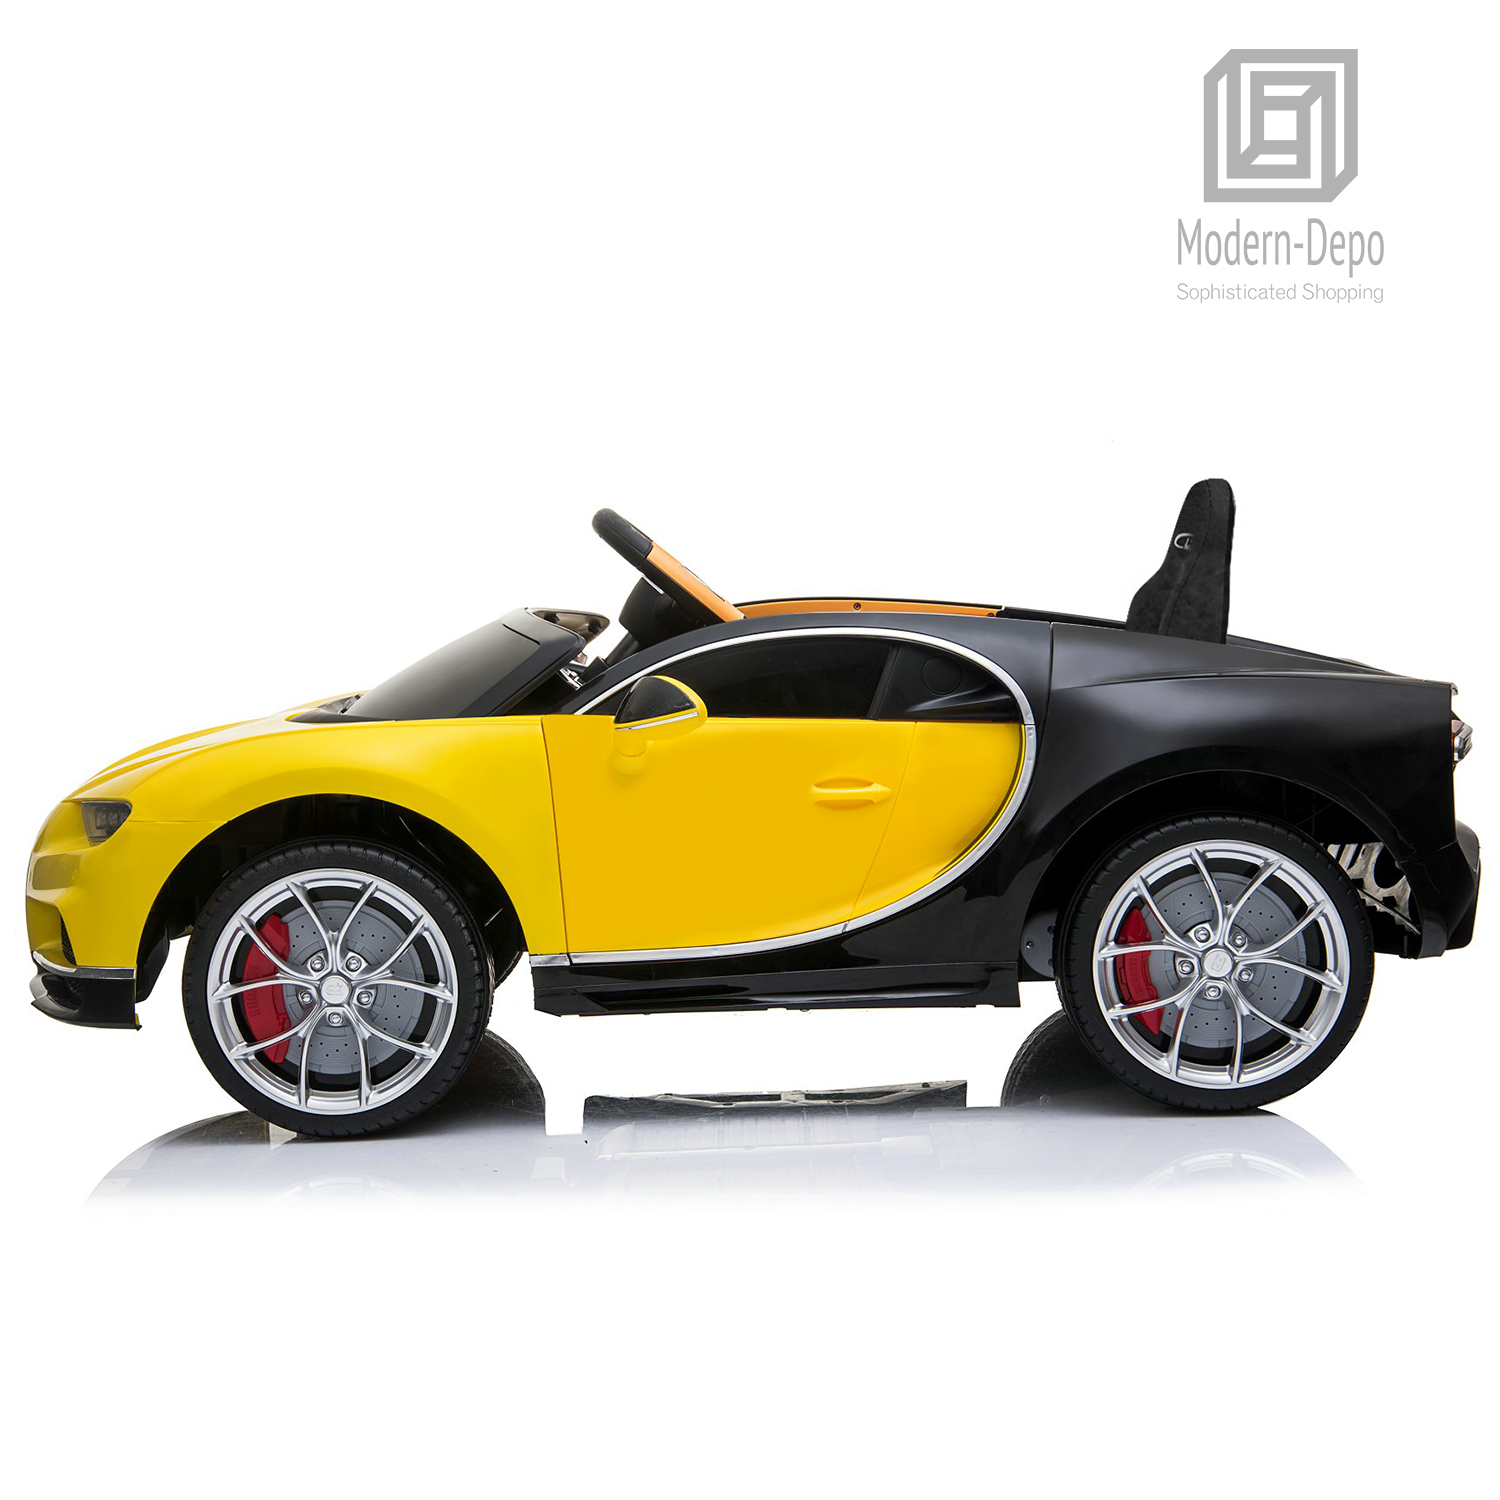 Bugatti-Chiron-12V-Kids-Ride-On-Car-with-Remote-Control-High-Speed-Motor miniature 45